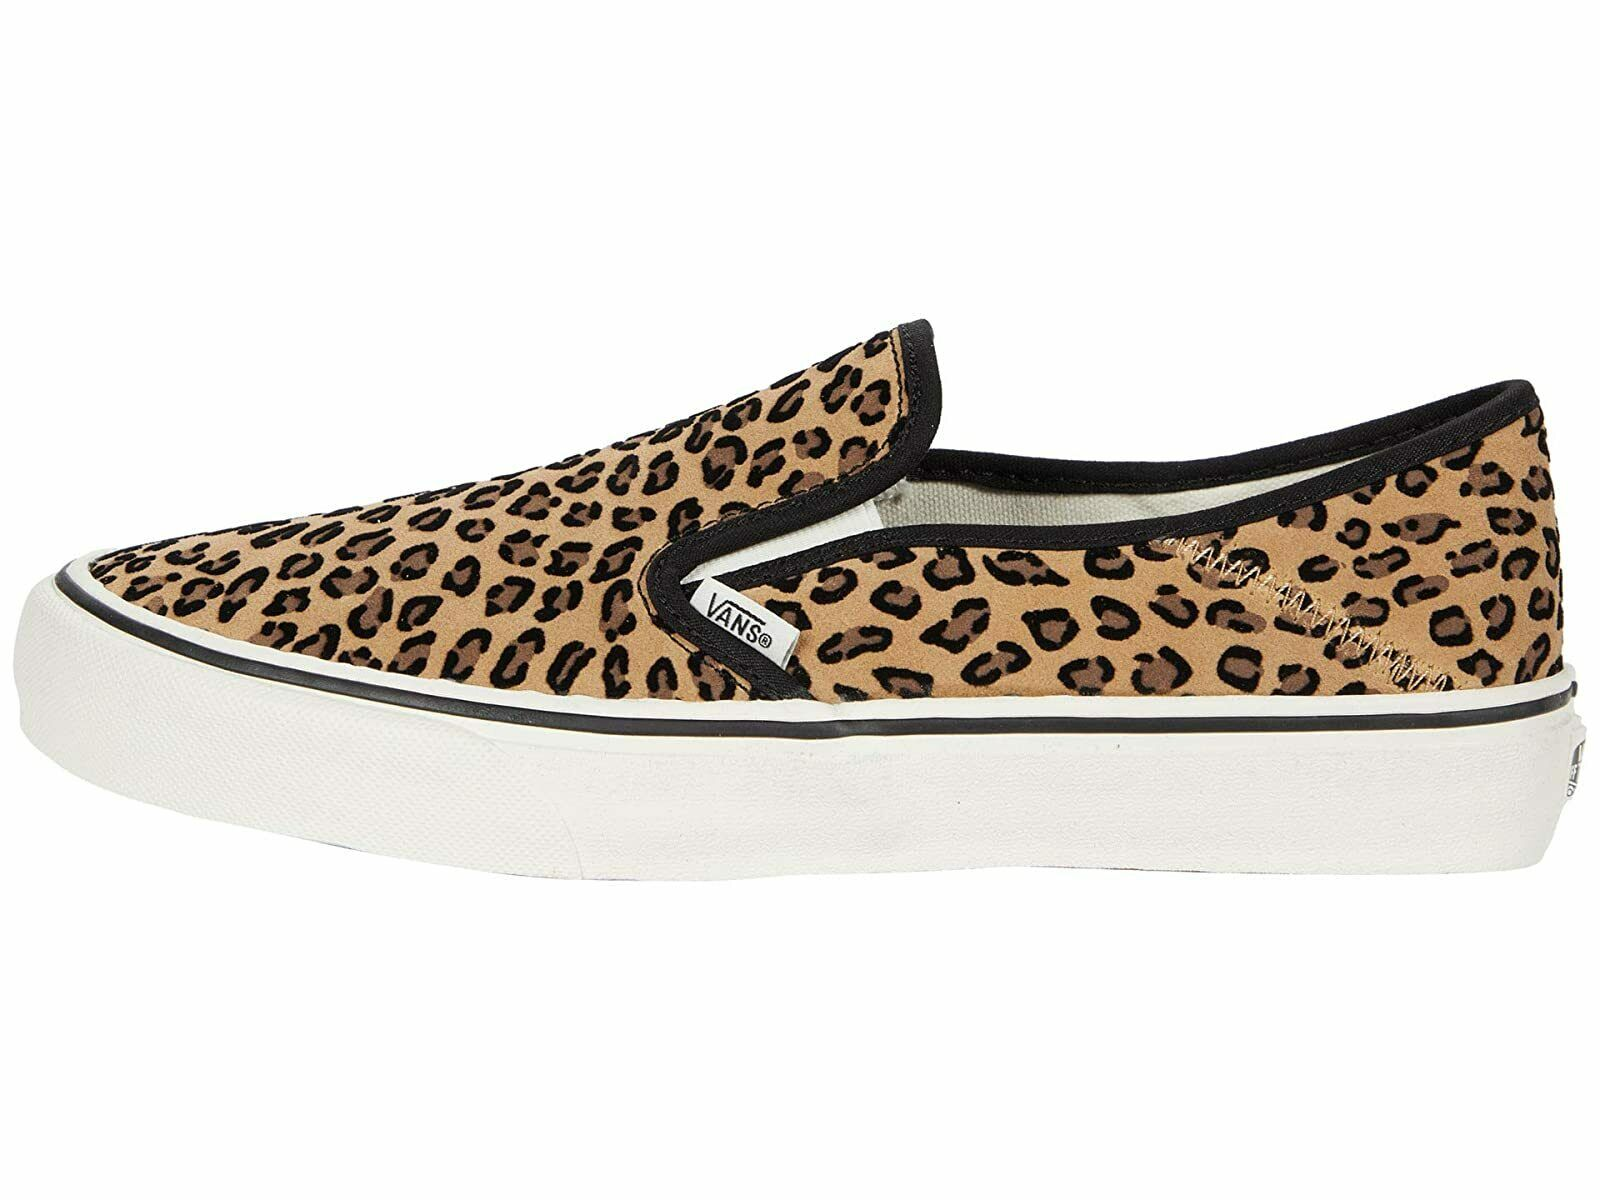 VANS SF LEOPARD PRINT SUEDE SLIP-ON CONVERTIBLE FASHION SNEAKERS SIZE 12